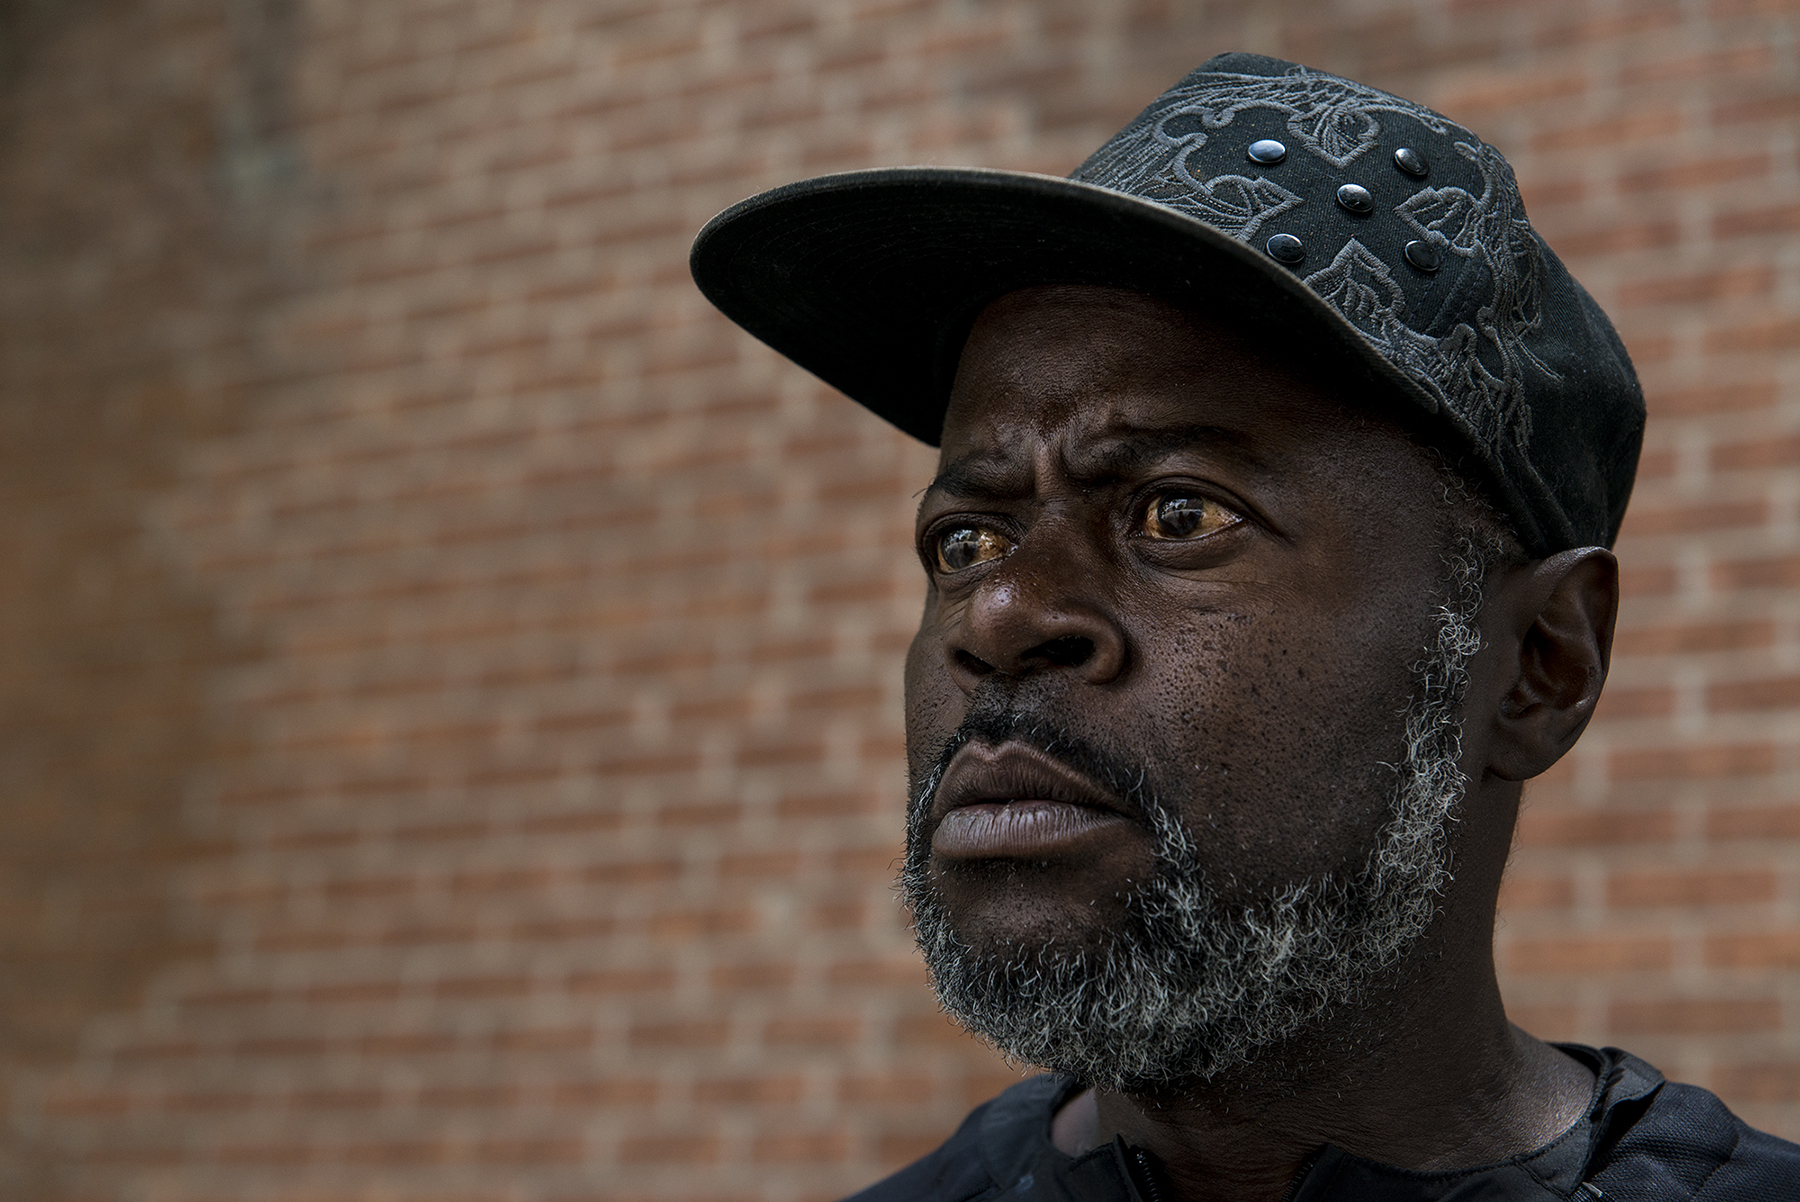 Duane Ronald Neal, 57, is a resident of the West End, a low-income neighborhood in downtown Cincinnati. He said shootings in the community have left voters disillusioned, especially among African-Americans. (Roman Knertser/News21)